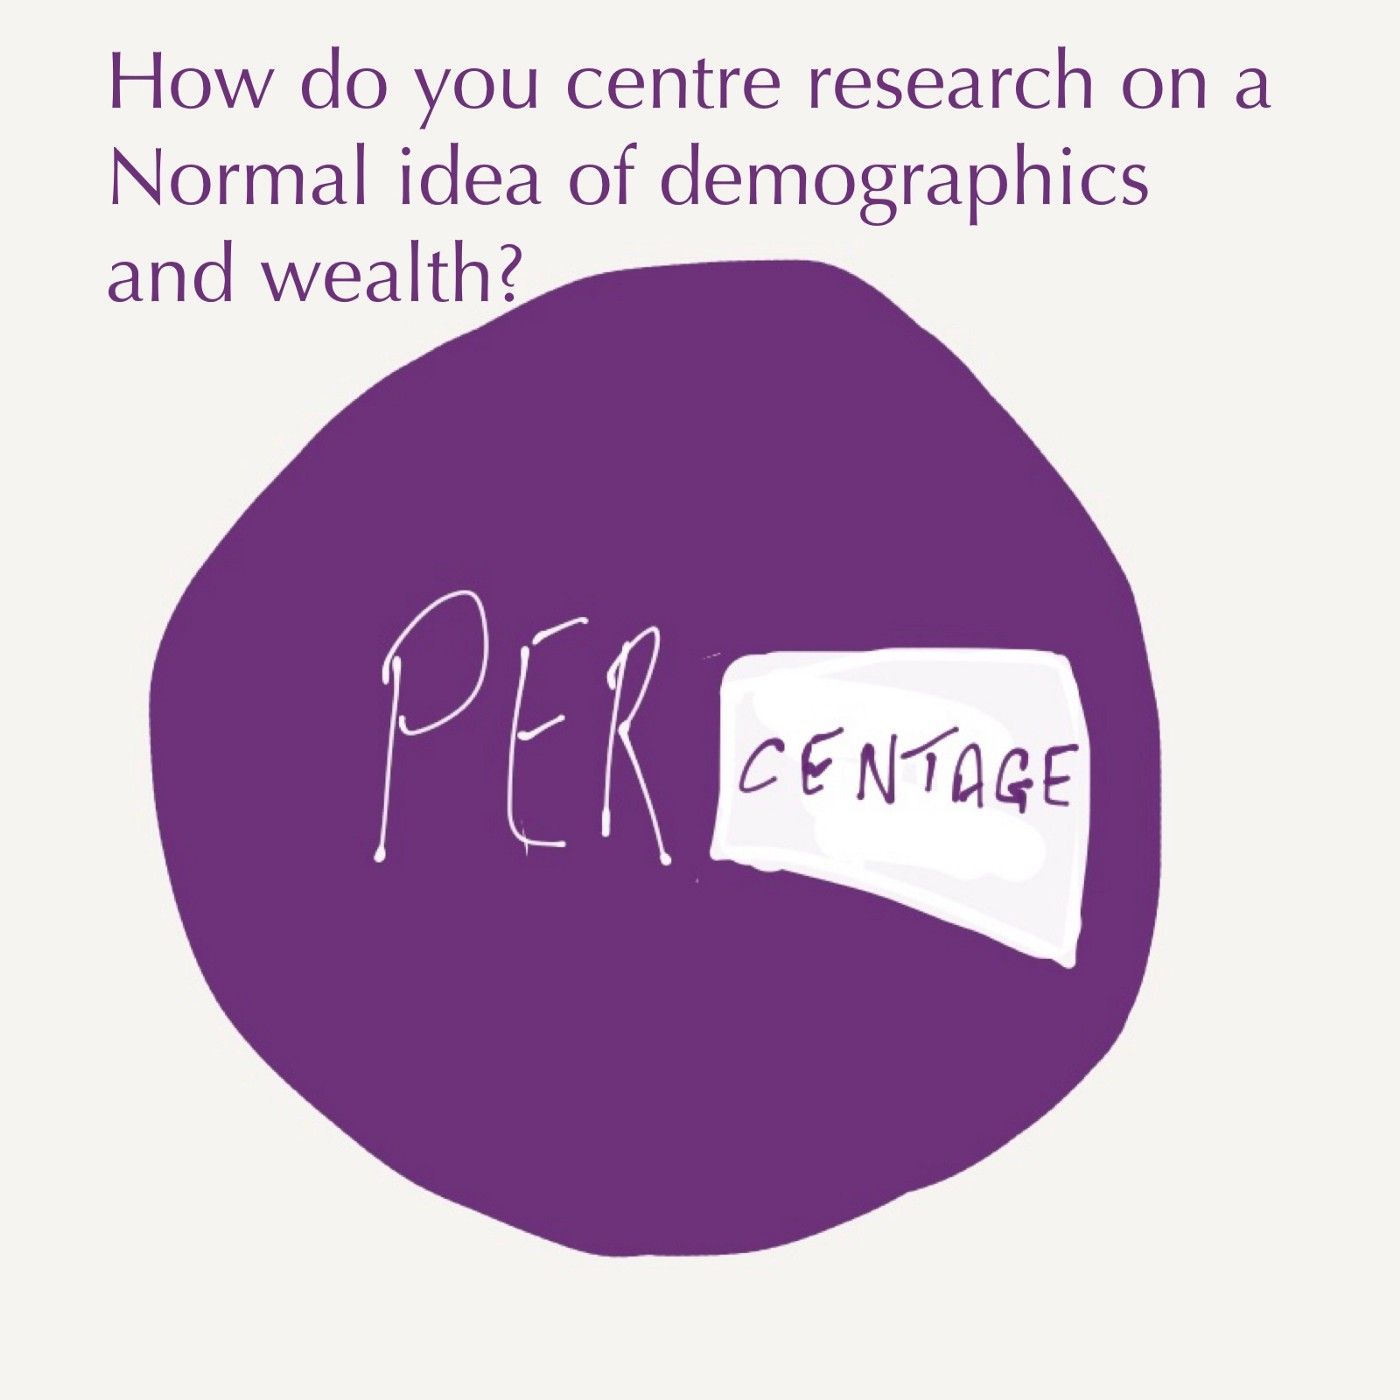 How do you centre analysis on a normal sense of using statistices to judge worth and wealth